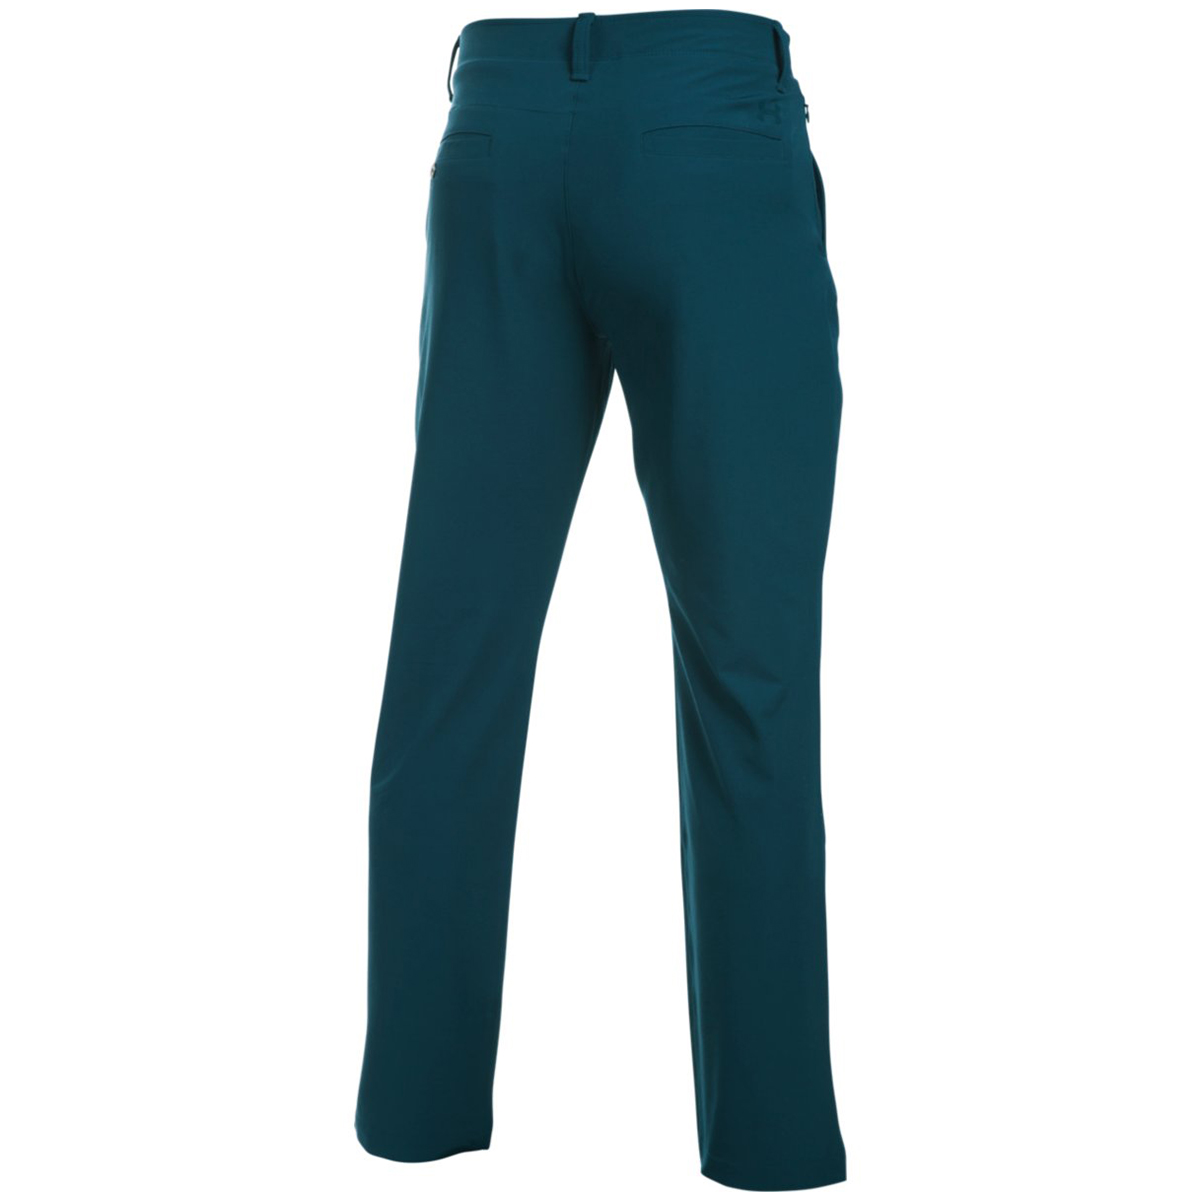 Under-Armour-Mens-Match-Play-ColdGear-Infrared-Taper-Golf-Trousers-52-OFF-RRP thumbnail 13